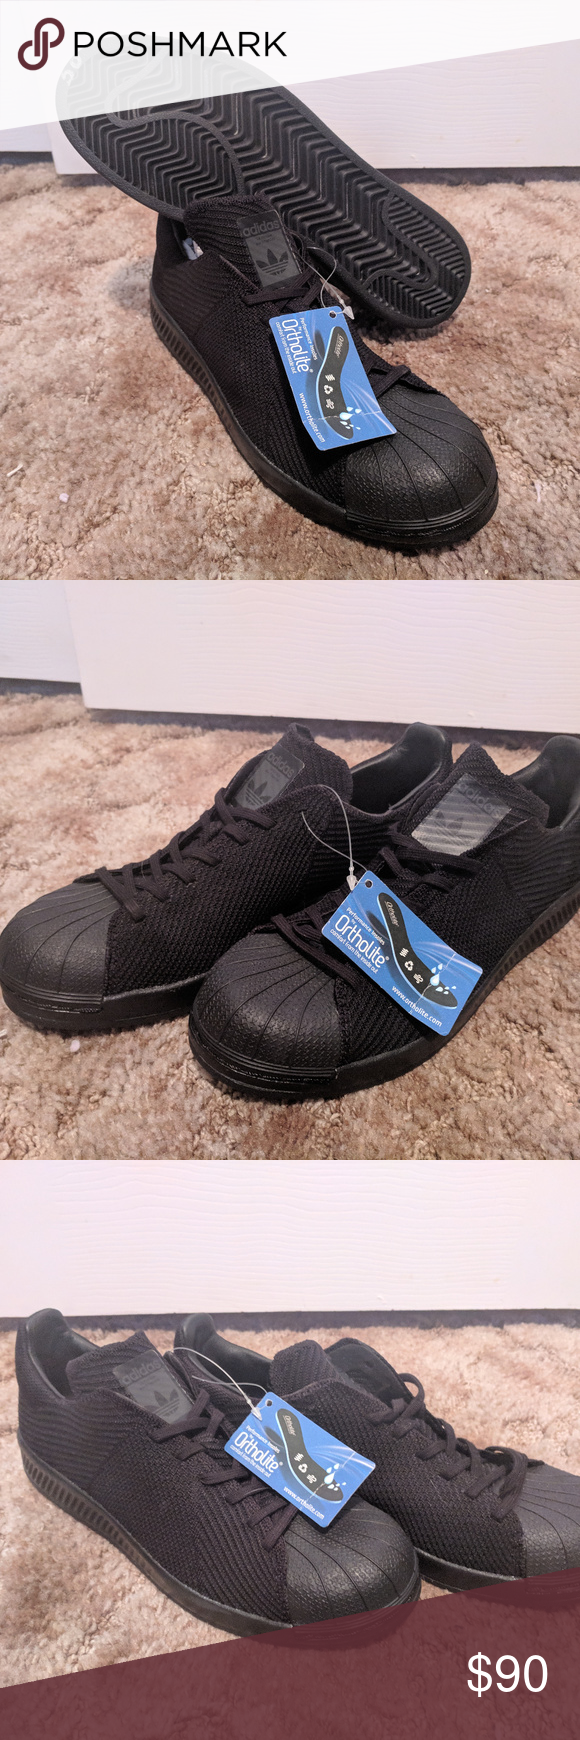 e92f87b198ae7 Adidas Superstar Bounce Primeknit Adidas Originals Superstar Bounce  Primeknit Size 9.5 Style Code S82241 Color Triple Black New without Box adidas  Shoes ...